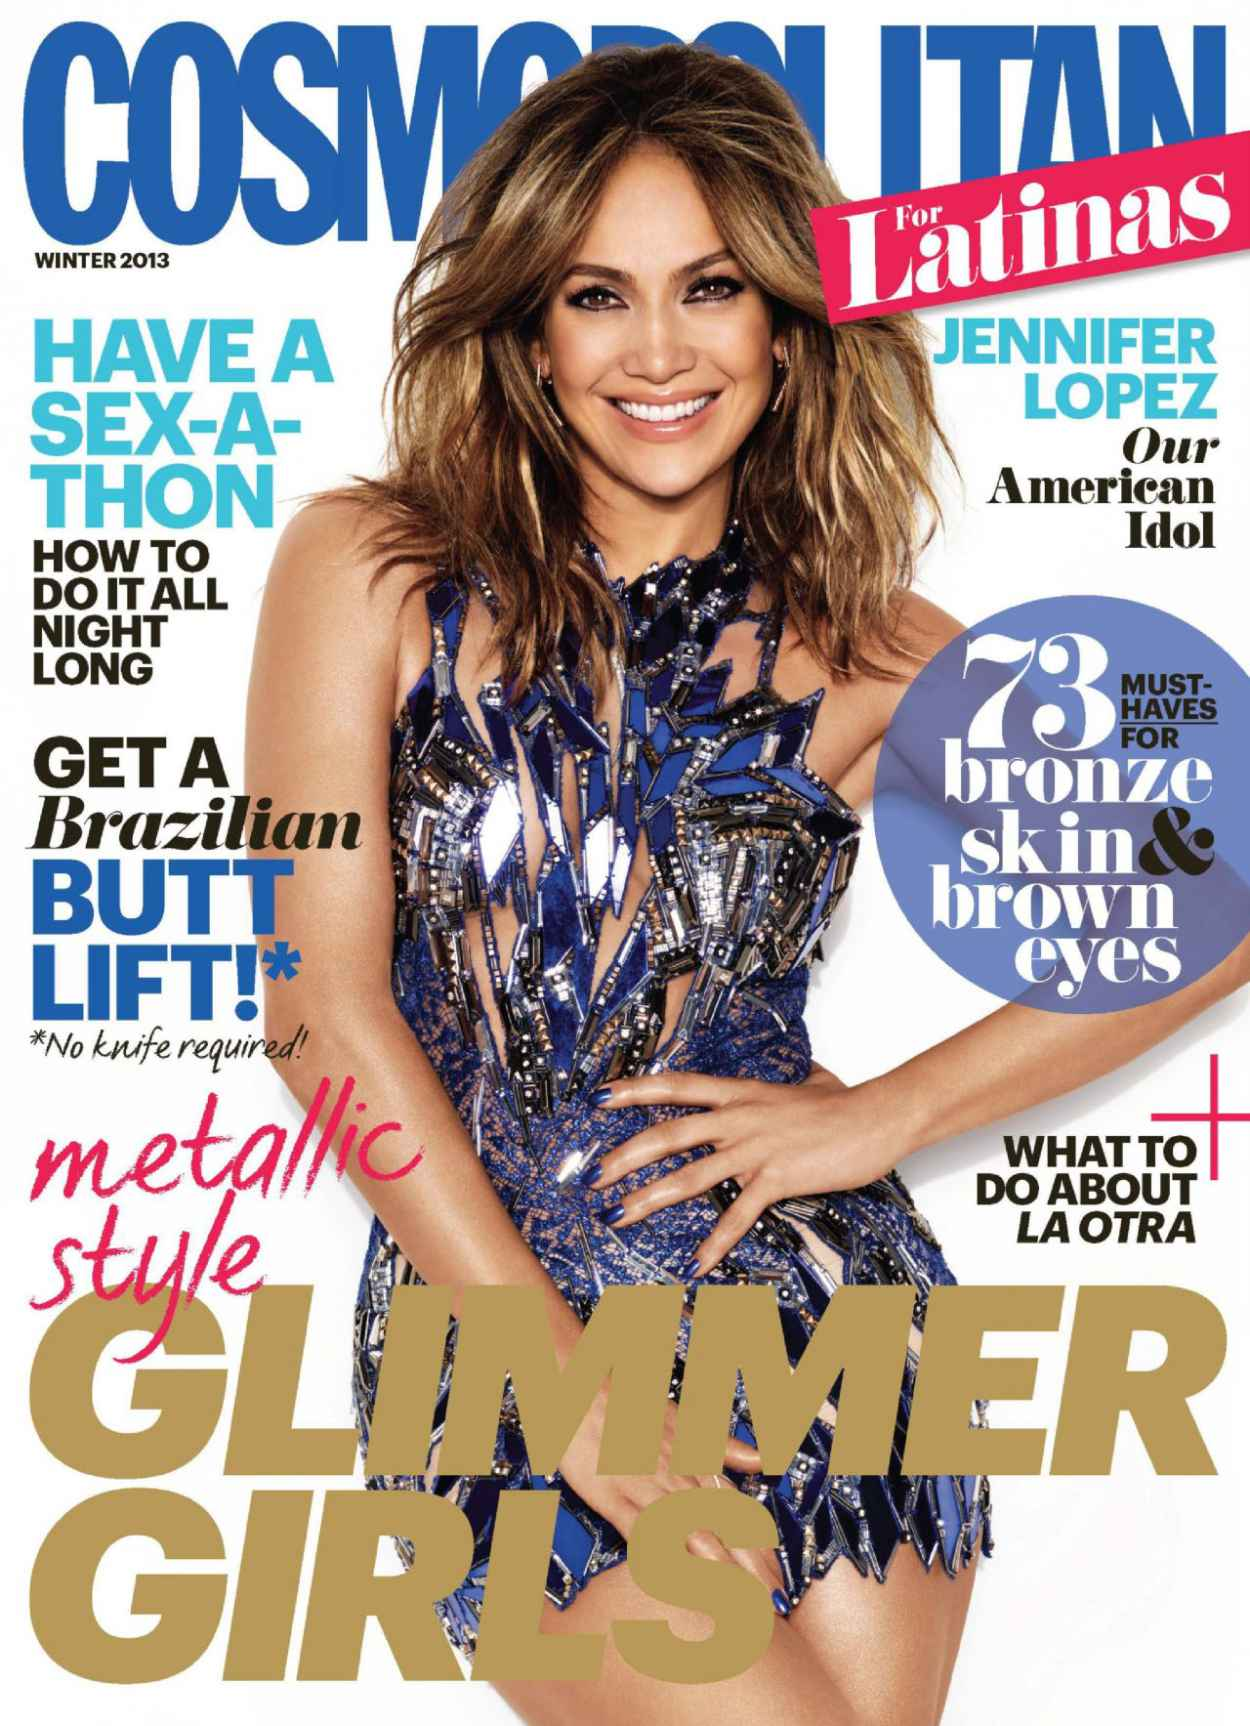 Jennifer Lopez - Leggy, Cosmo for Latinas Winter 2015 Issue-1